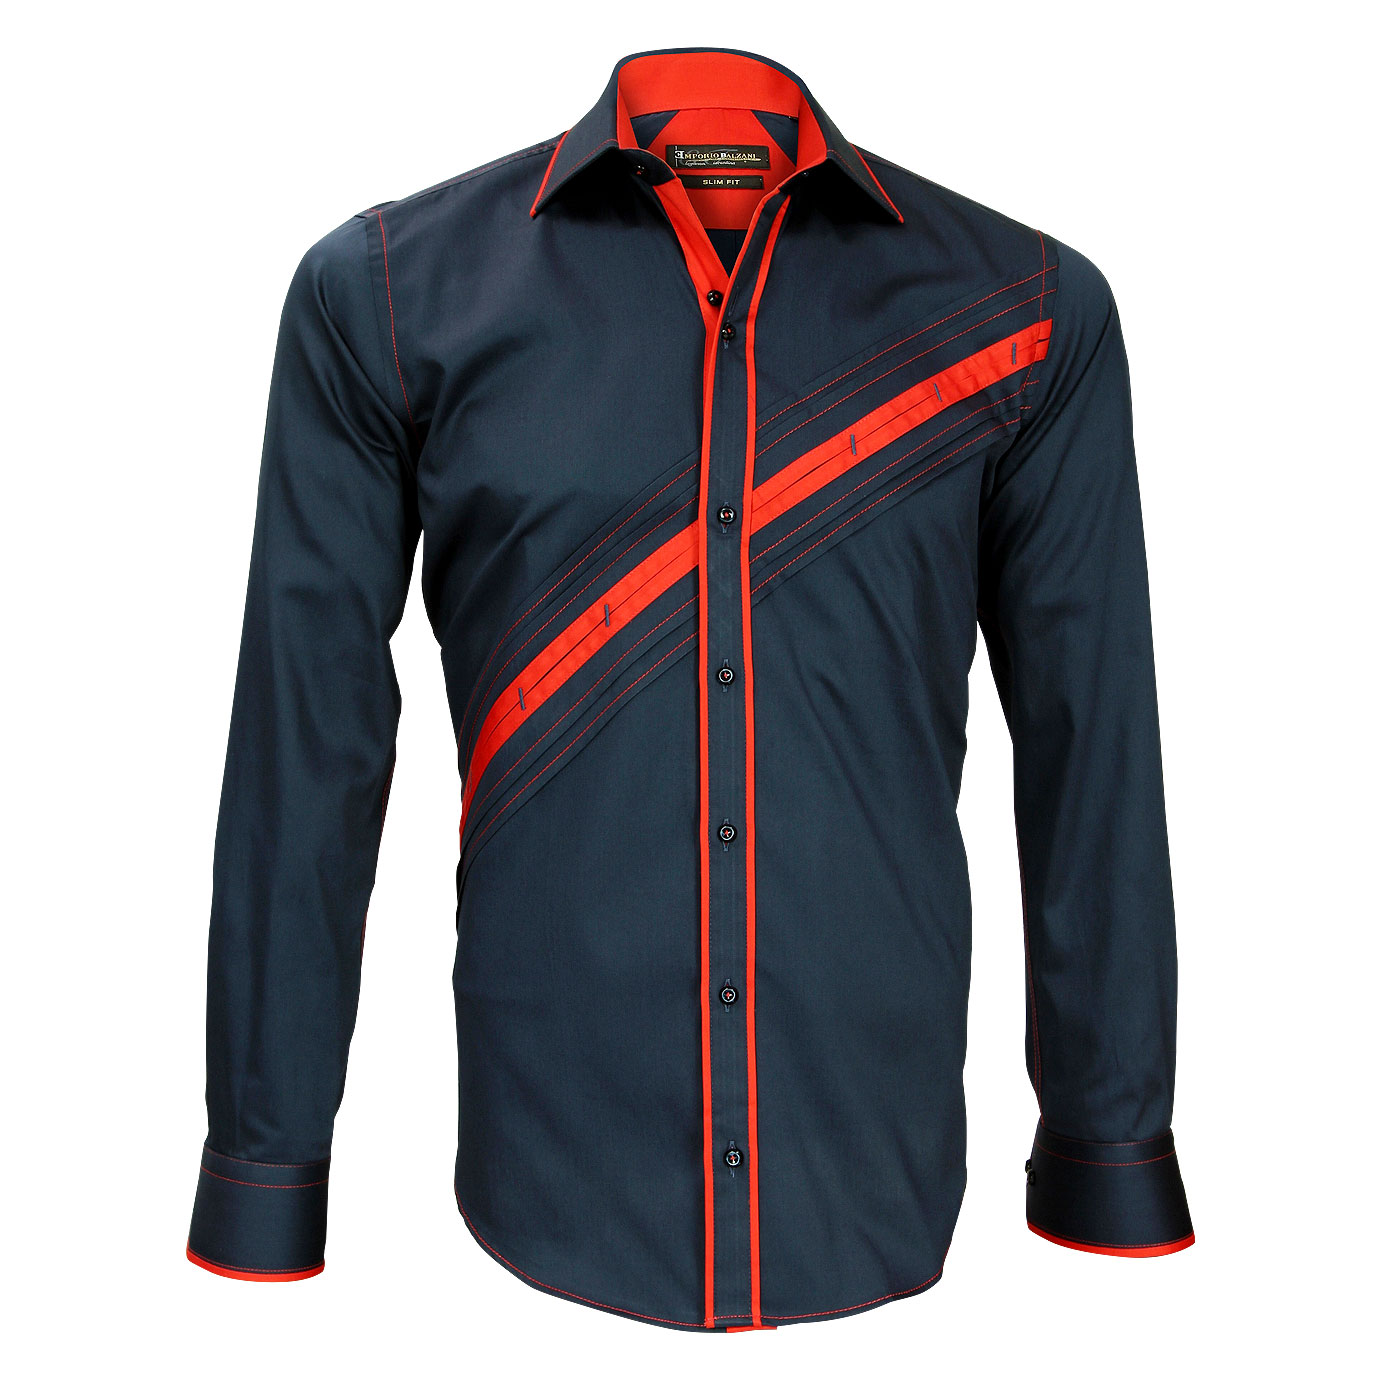 Trendy shirt, men's shirt selling on the web: Webmenshirts